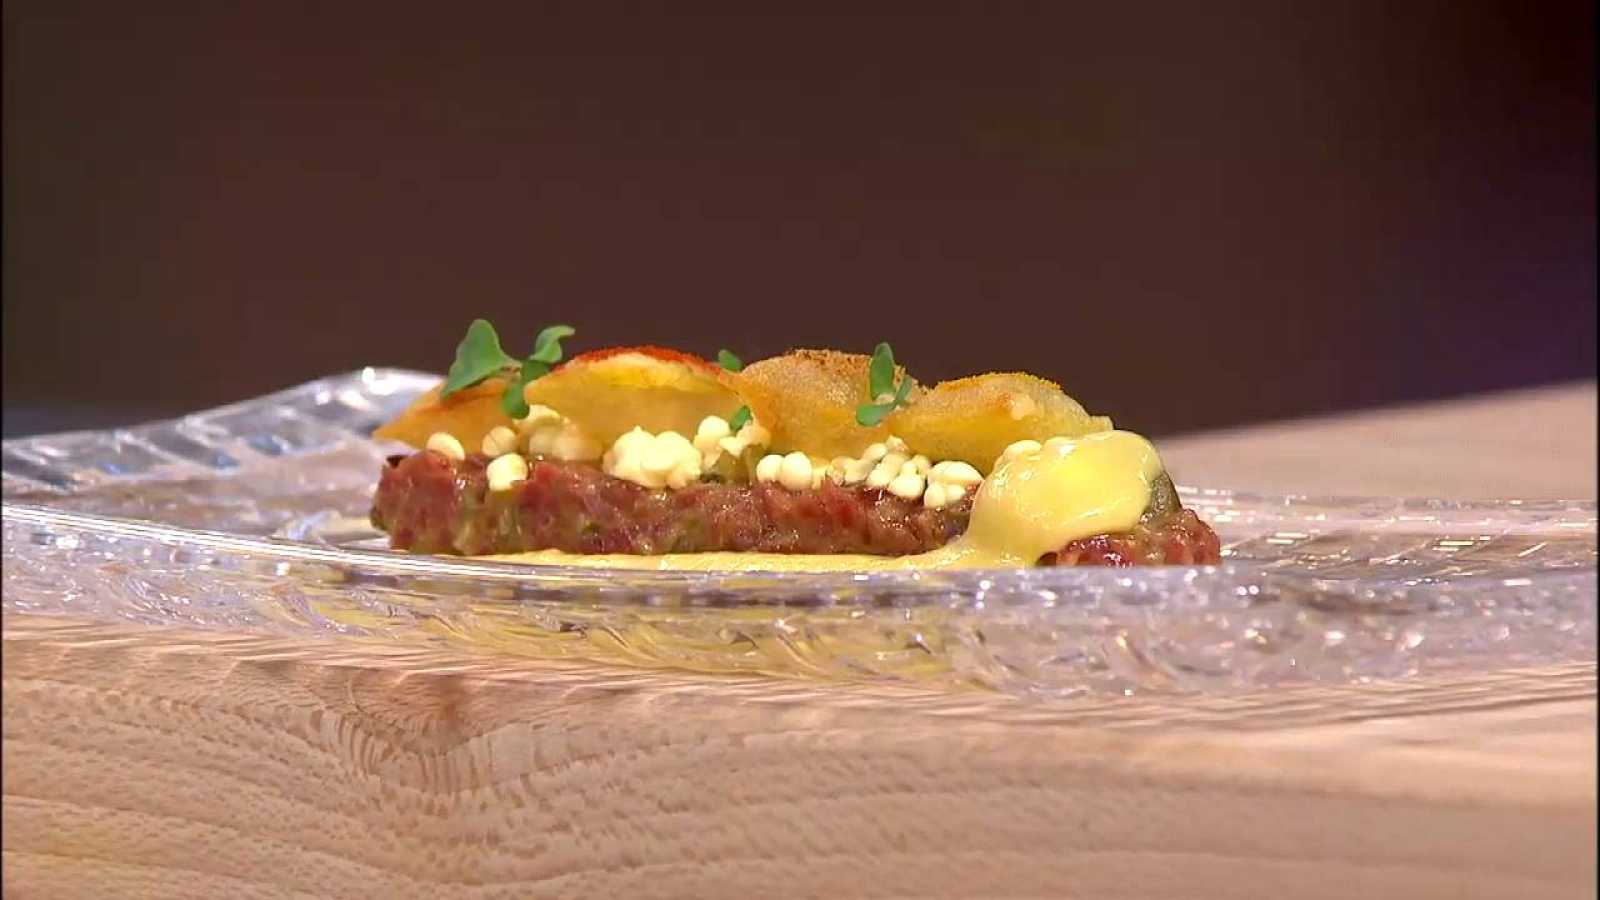 Receta de steak tartare, por Joan Roca